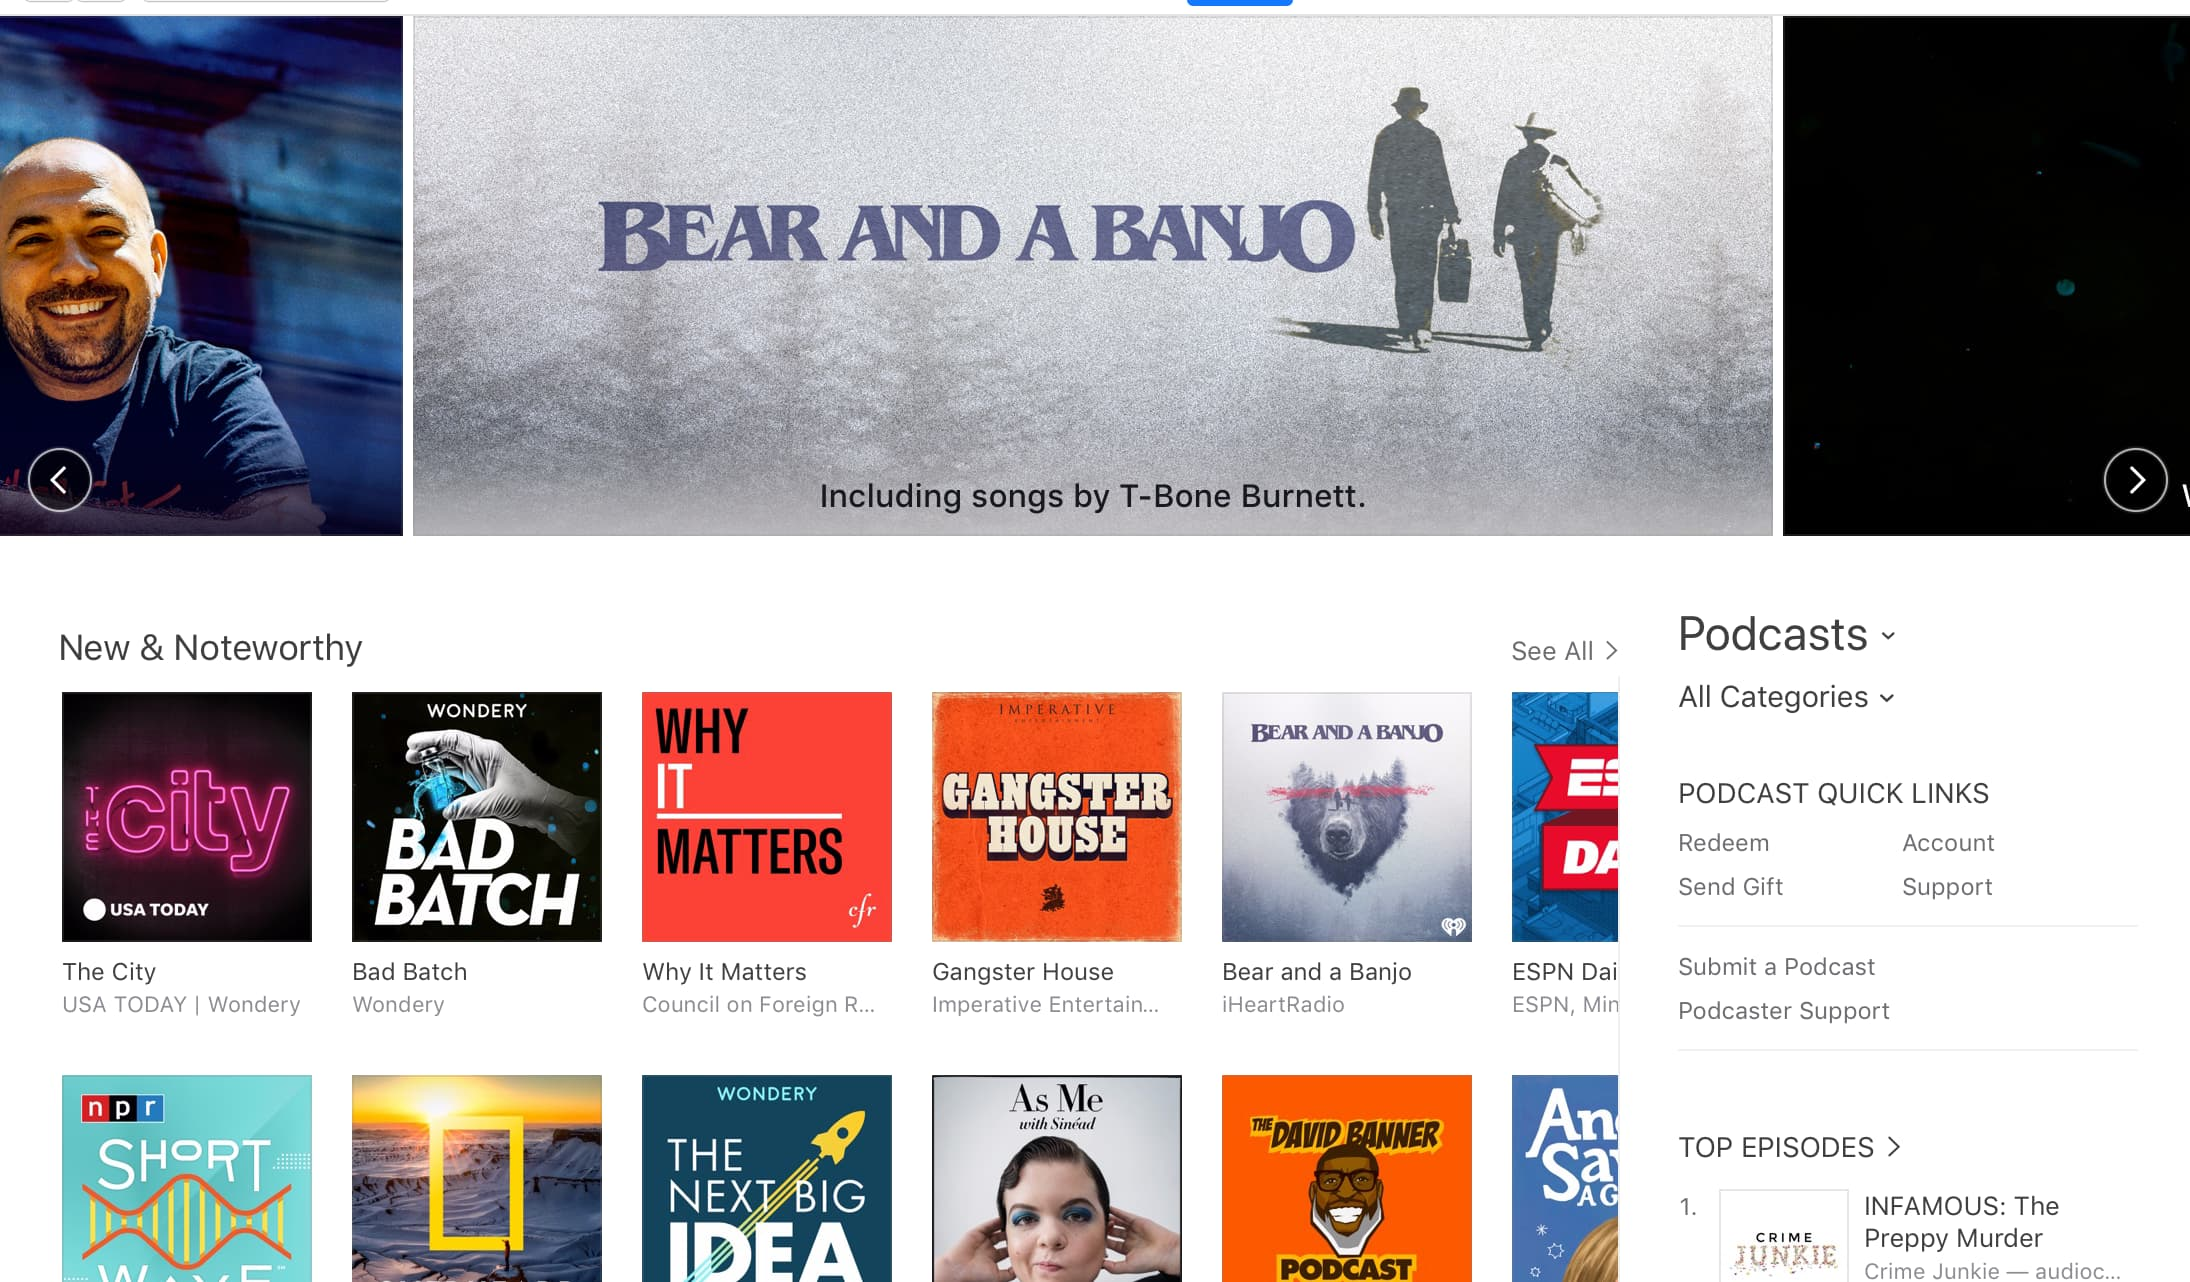 A list of podcasts in iTunes